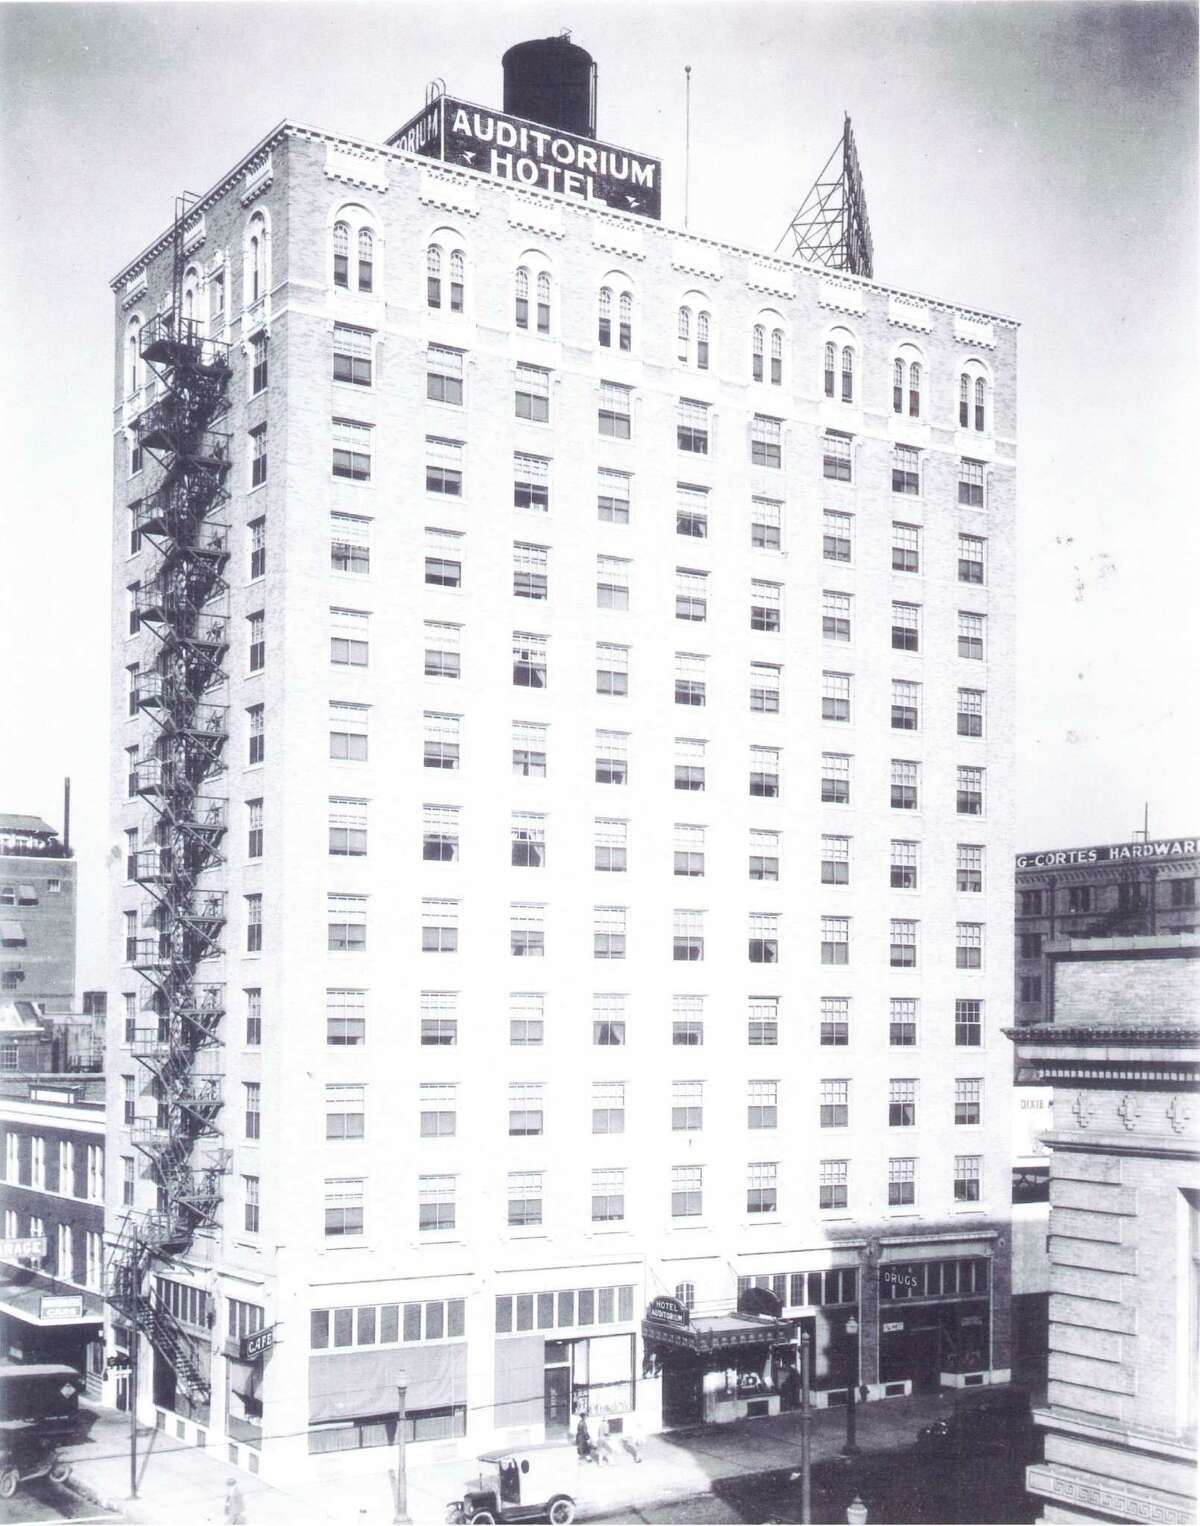 An archival photo of the Auditorium Hotel, built by Joseph Finger in downtown Houston. The Auditorium opened in 1926 and became the Lancaster Hotel in 1983.